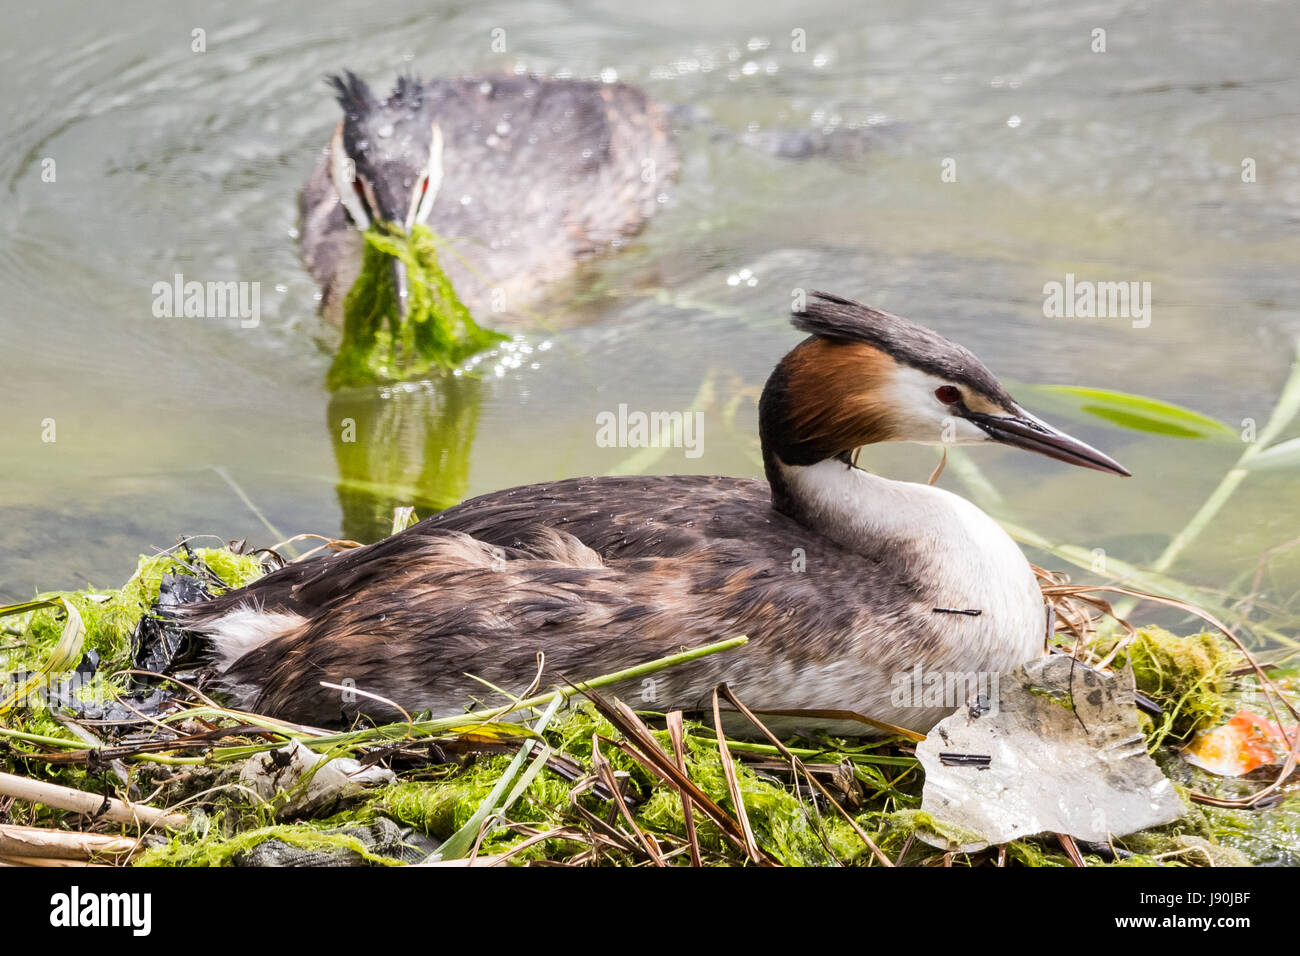 London, UK. 30th May, 2017. Great Crested Grebes nesting on Canada Water pond. © Guy Corbishley/Alamy Live - Stock Image